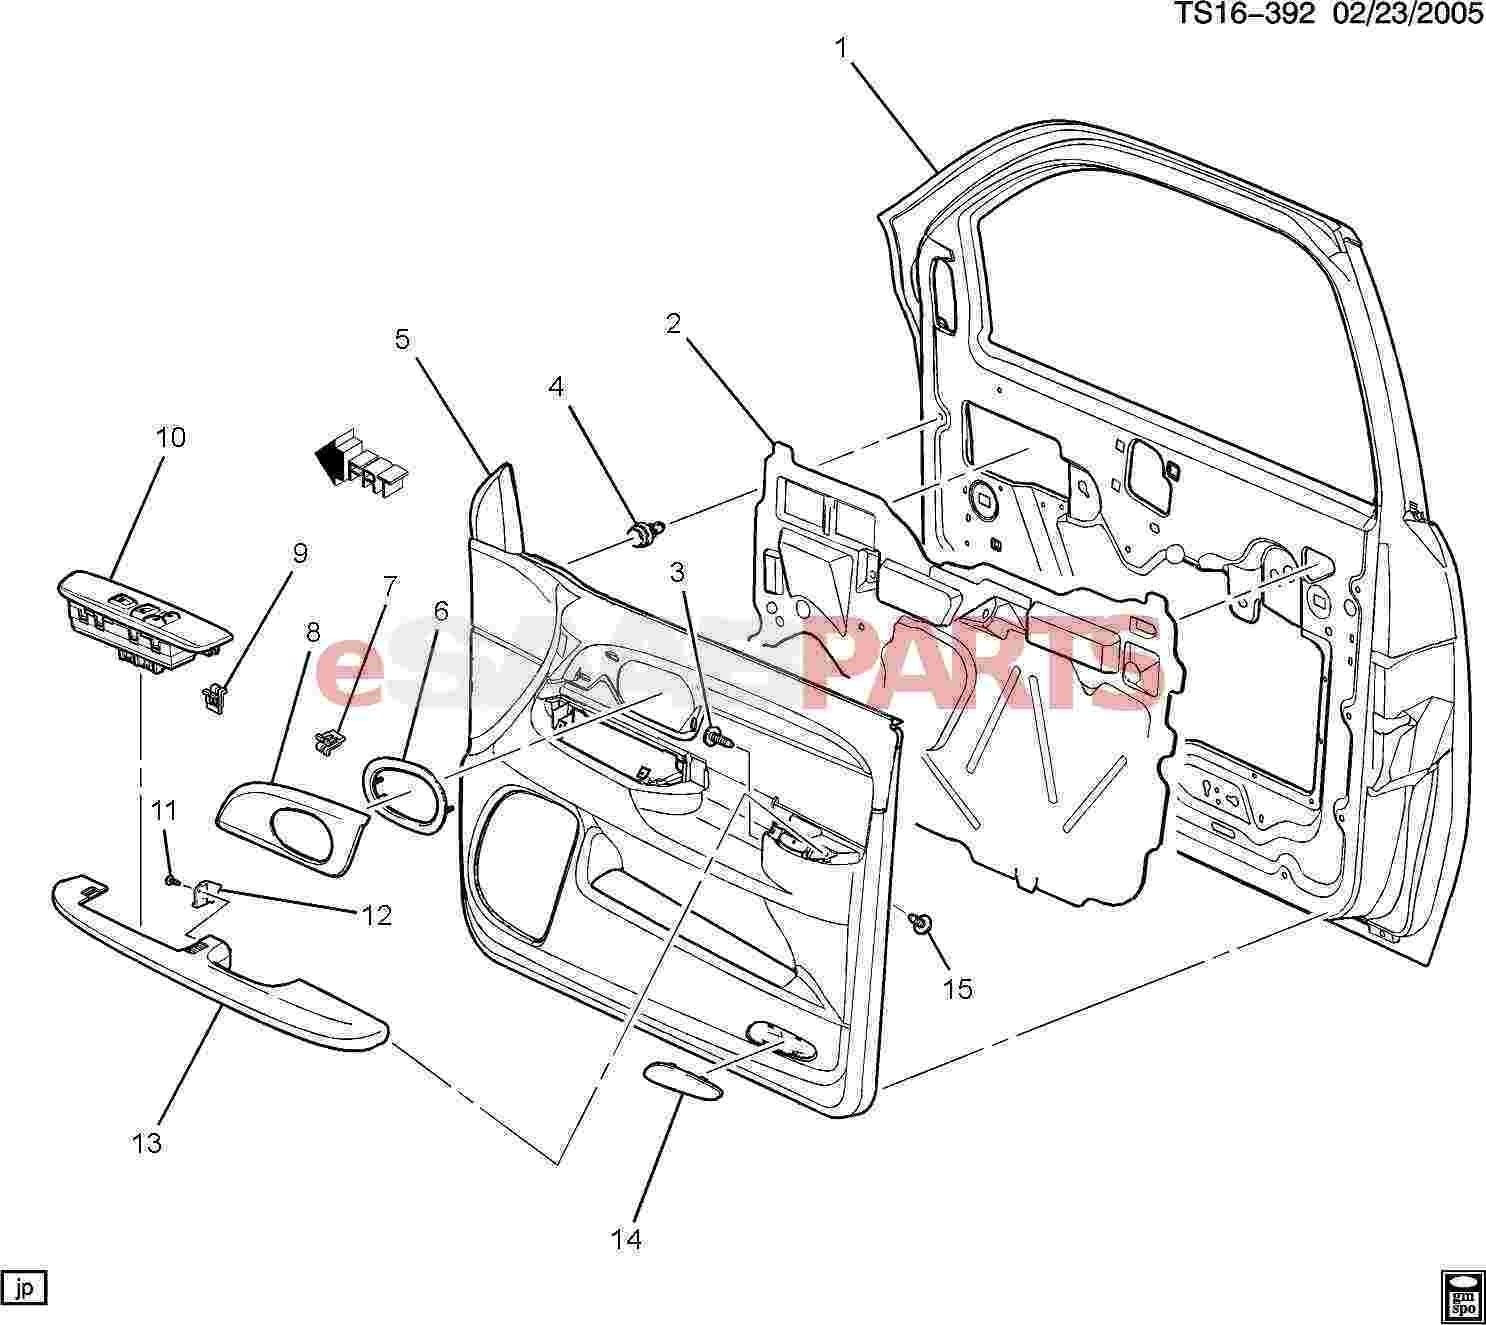 Mazda Rx8 Engine Diagram Wiring Library Saab Diagrams Parts Of Under A Car Bolt